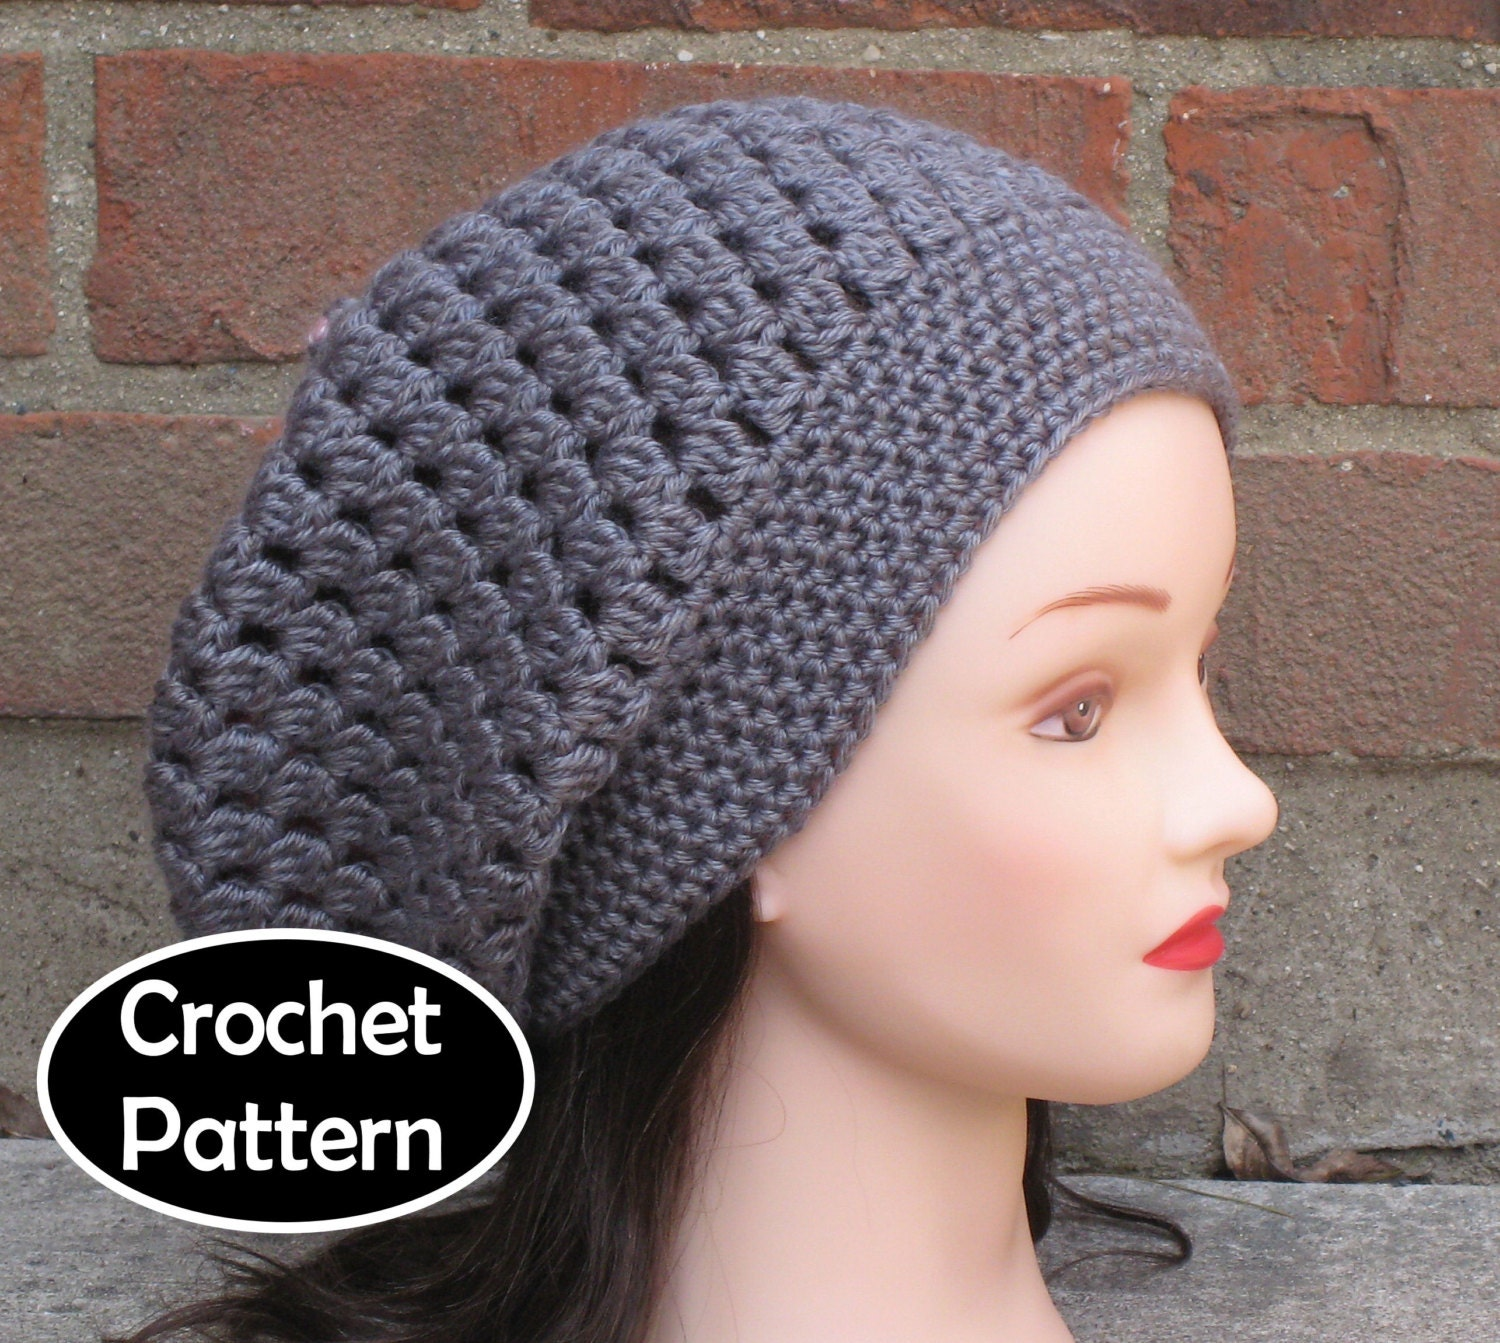 Crochet Hat Pattern Download : CROCHET HAT PATTERN Instant Download Pdf Drift by AlyseCrochet